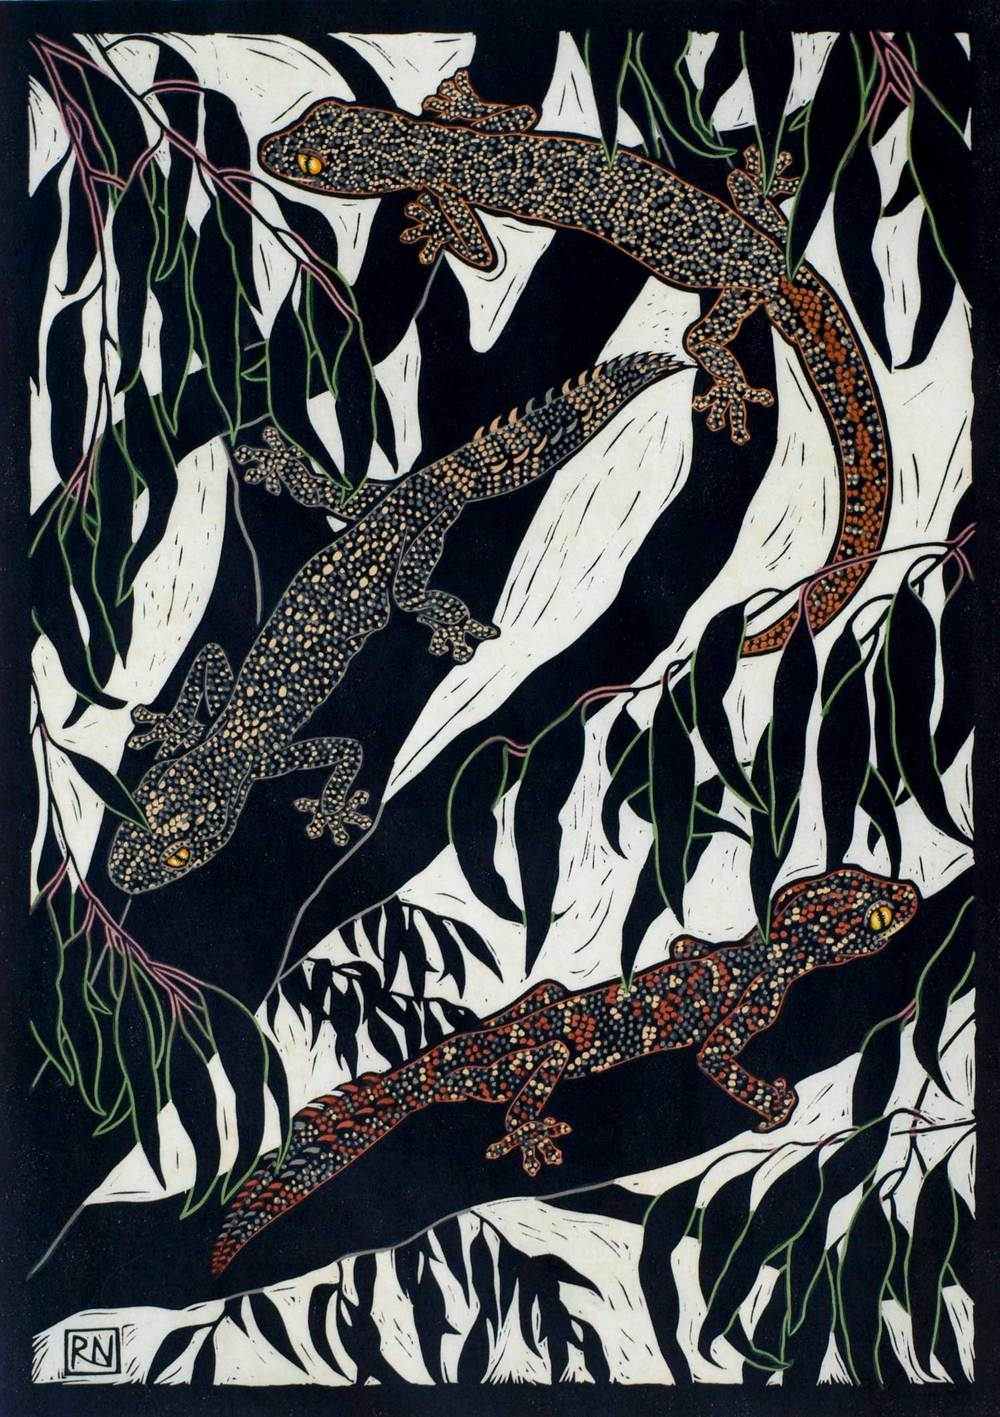 GECKOS  49 X 35.5 CM EDITION OF 50  HAND COLOURED LINOCUT ON HANDMADE JAPANESE PAPER  $1,100